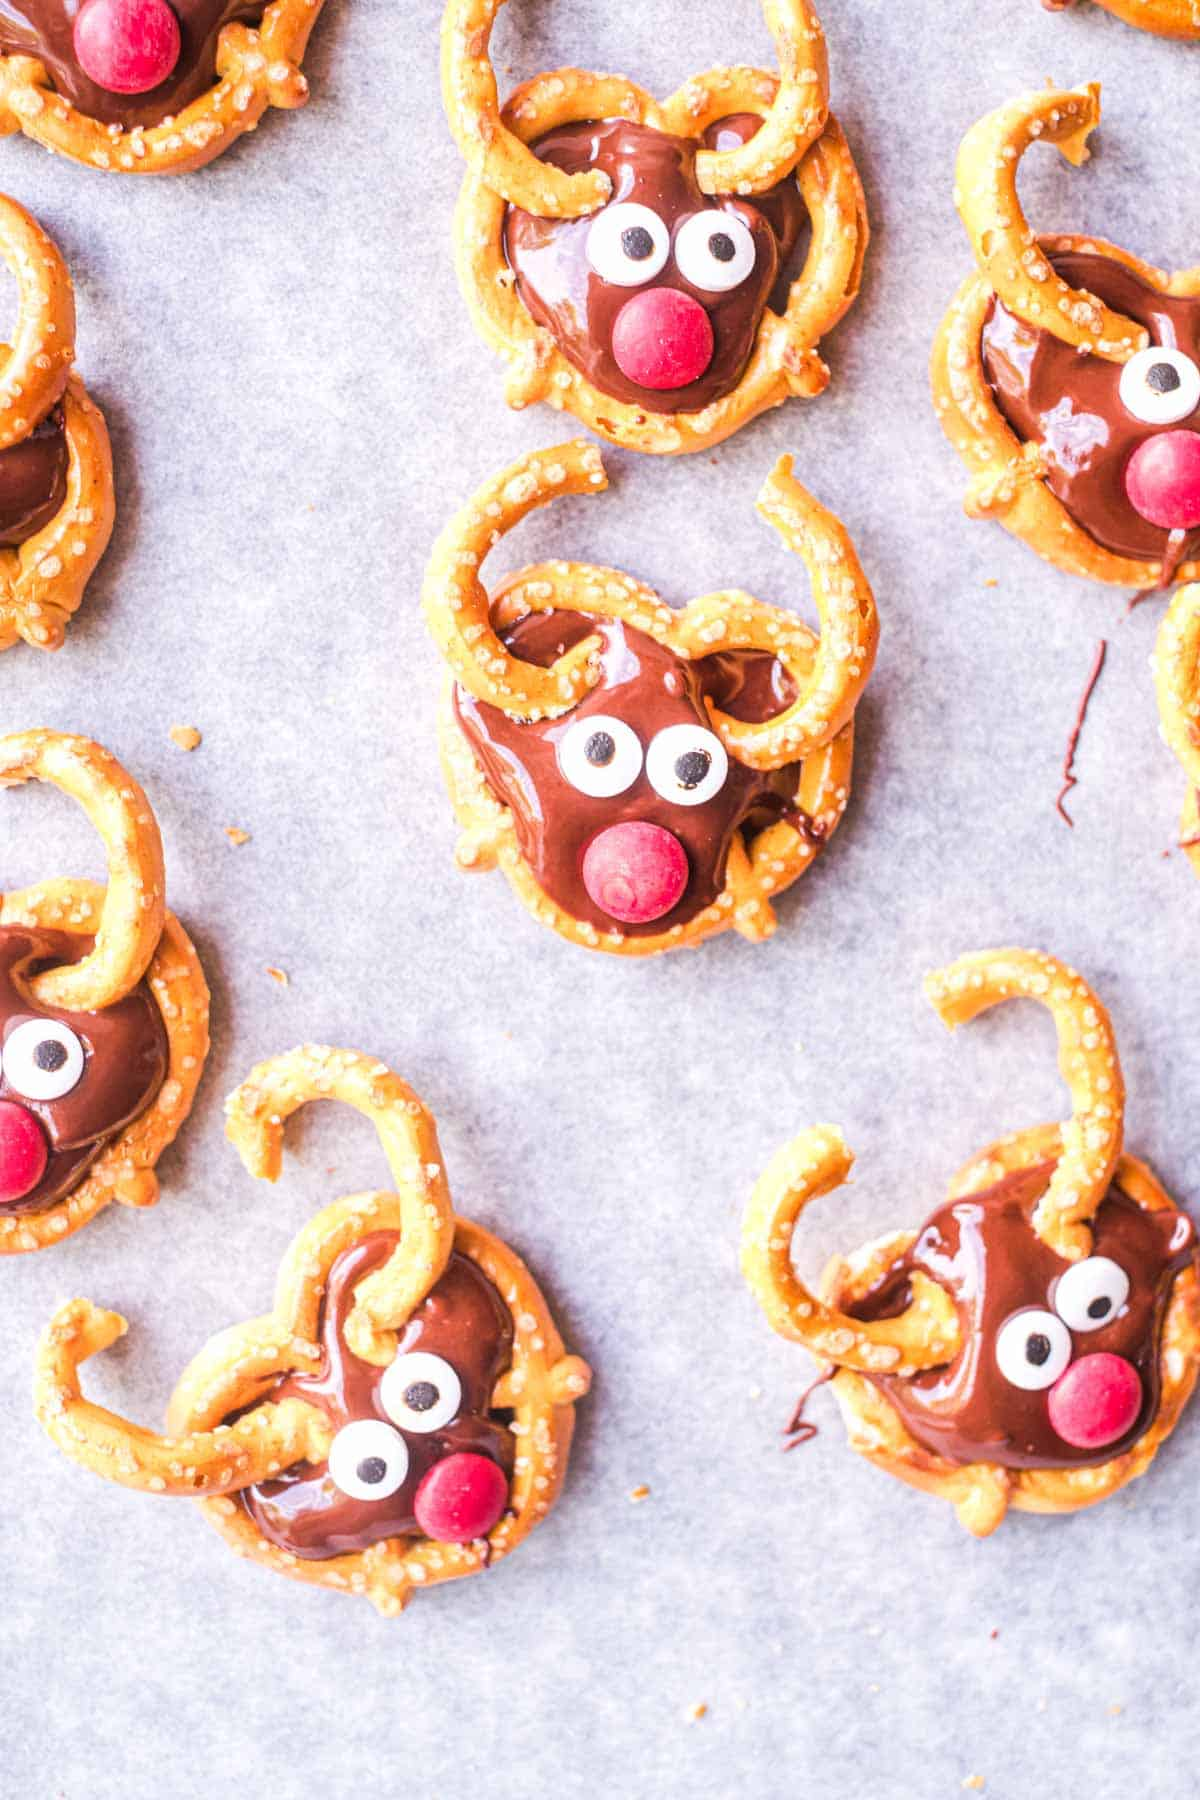 a table full of reindeer pretzels with red noses